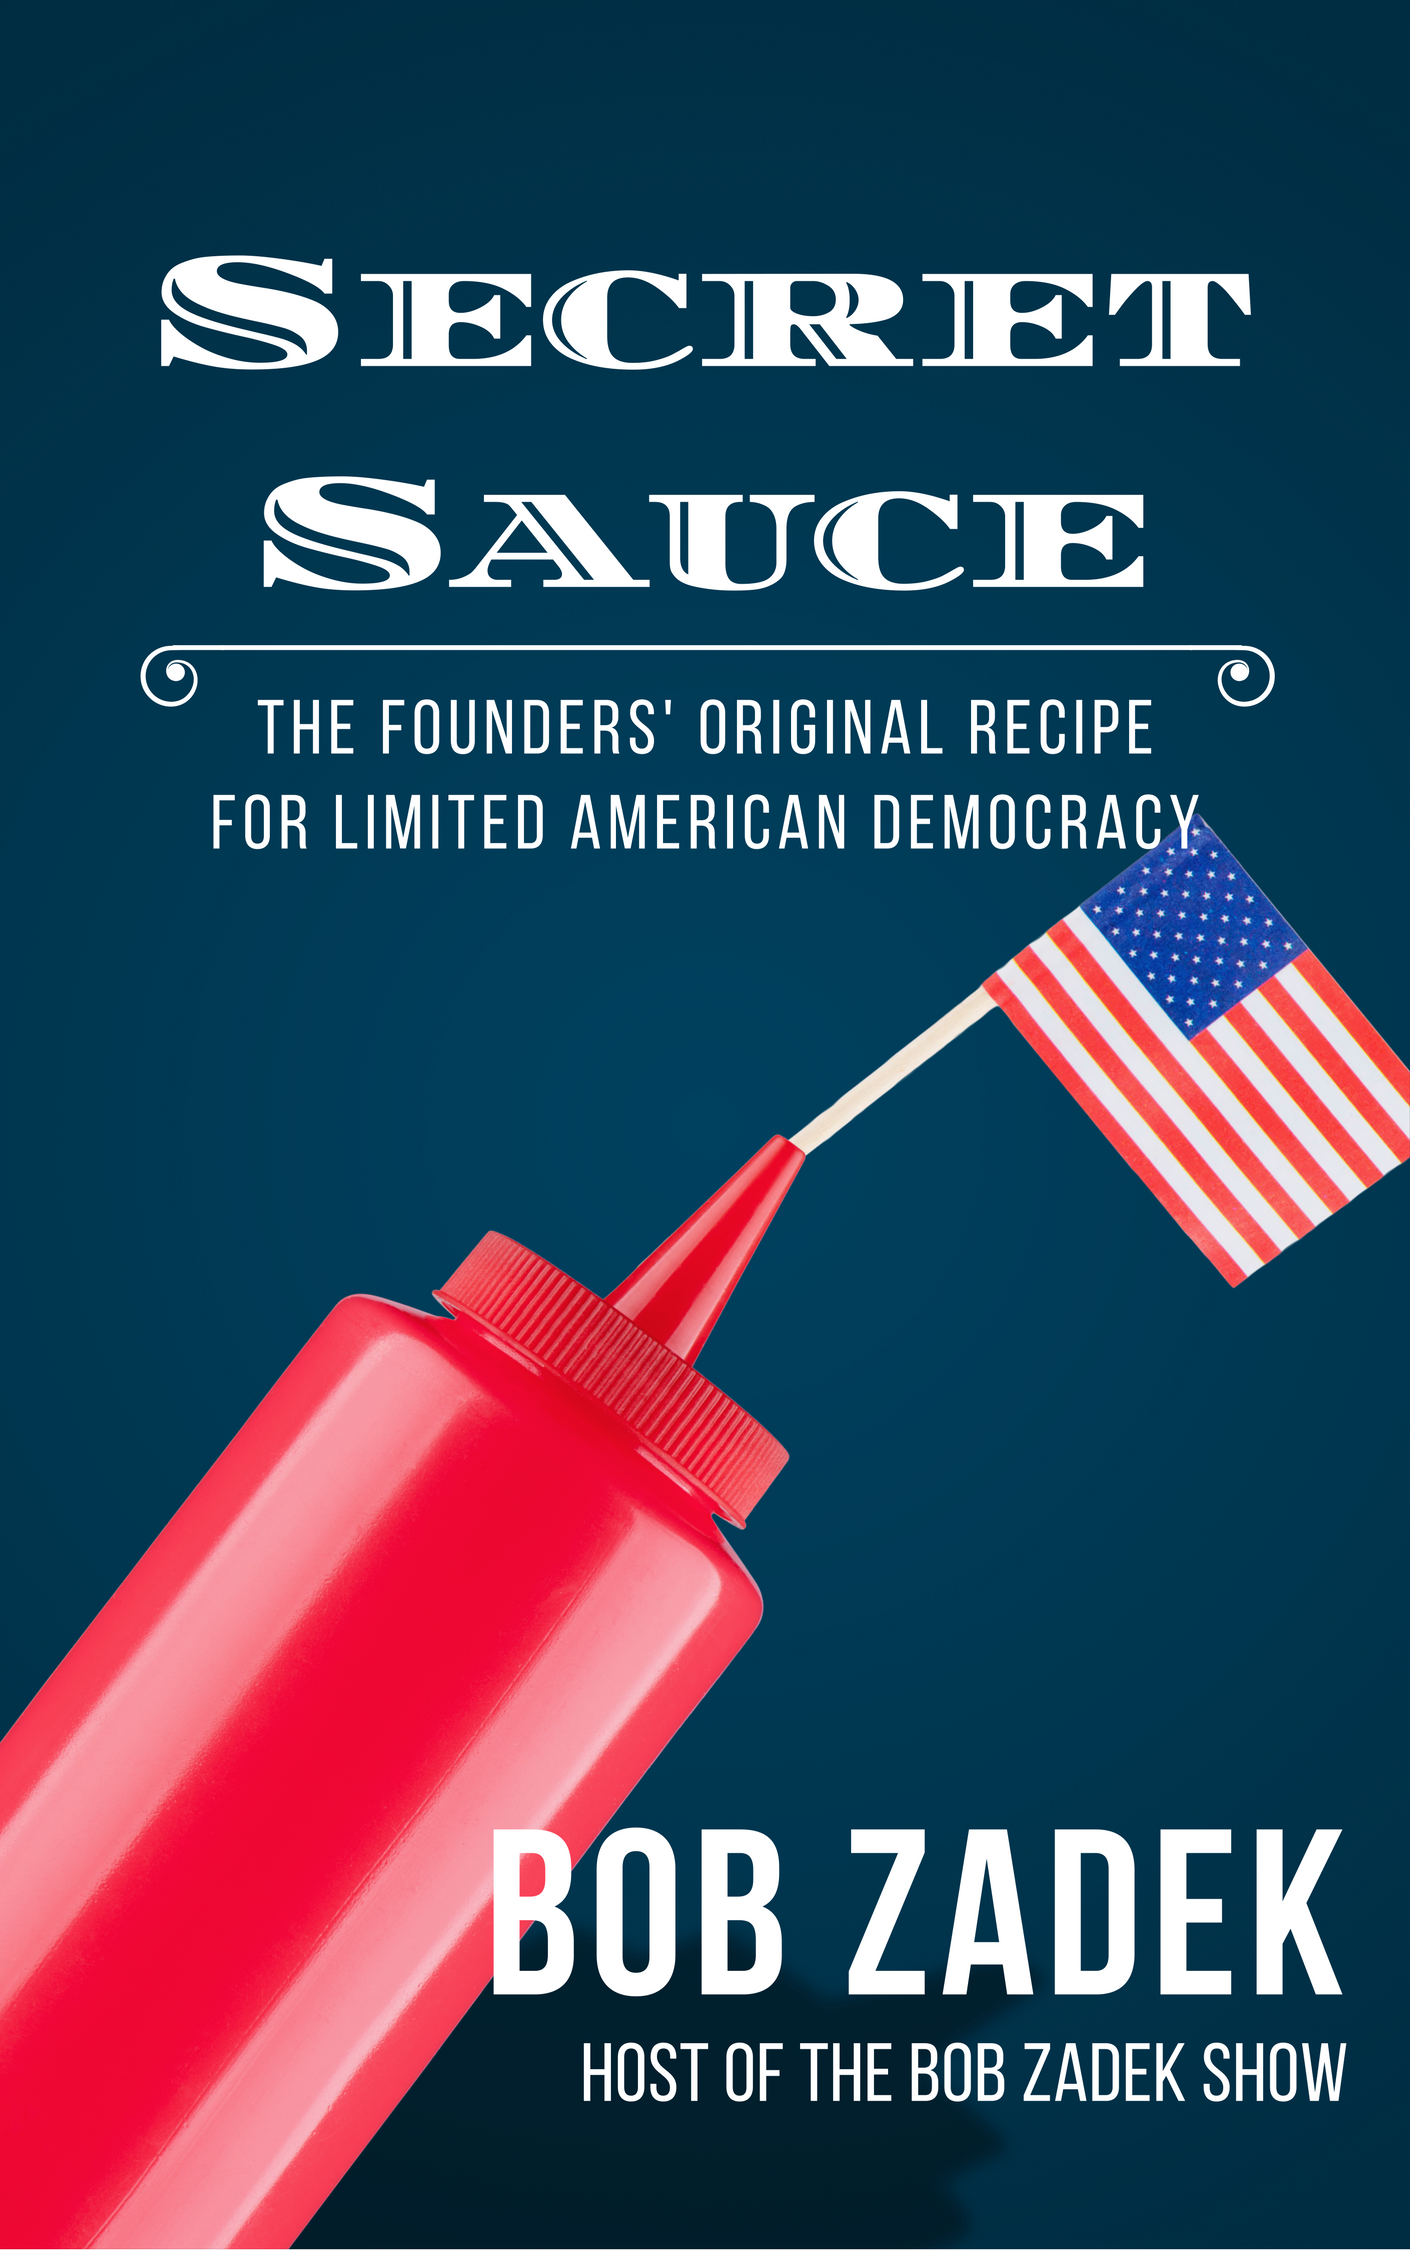 Is there such a thing as too much democracy? - The Founders thought so...Read Bob's new free ebook, featuring your favorite thinkers' combined recipe for renewed American democracy.